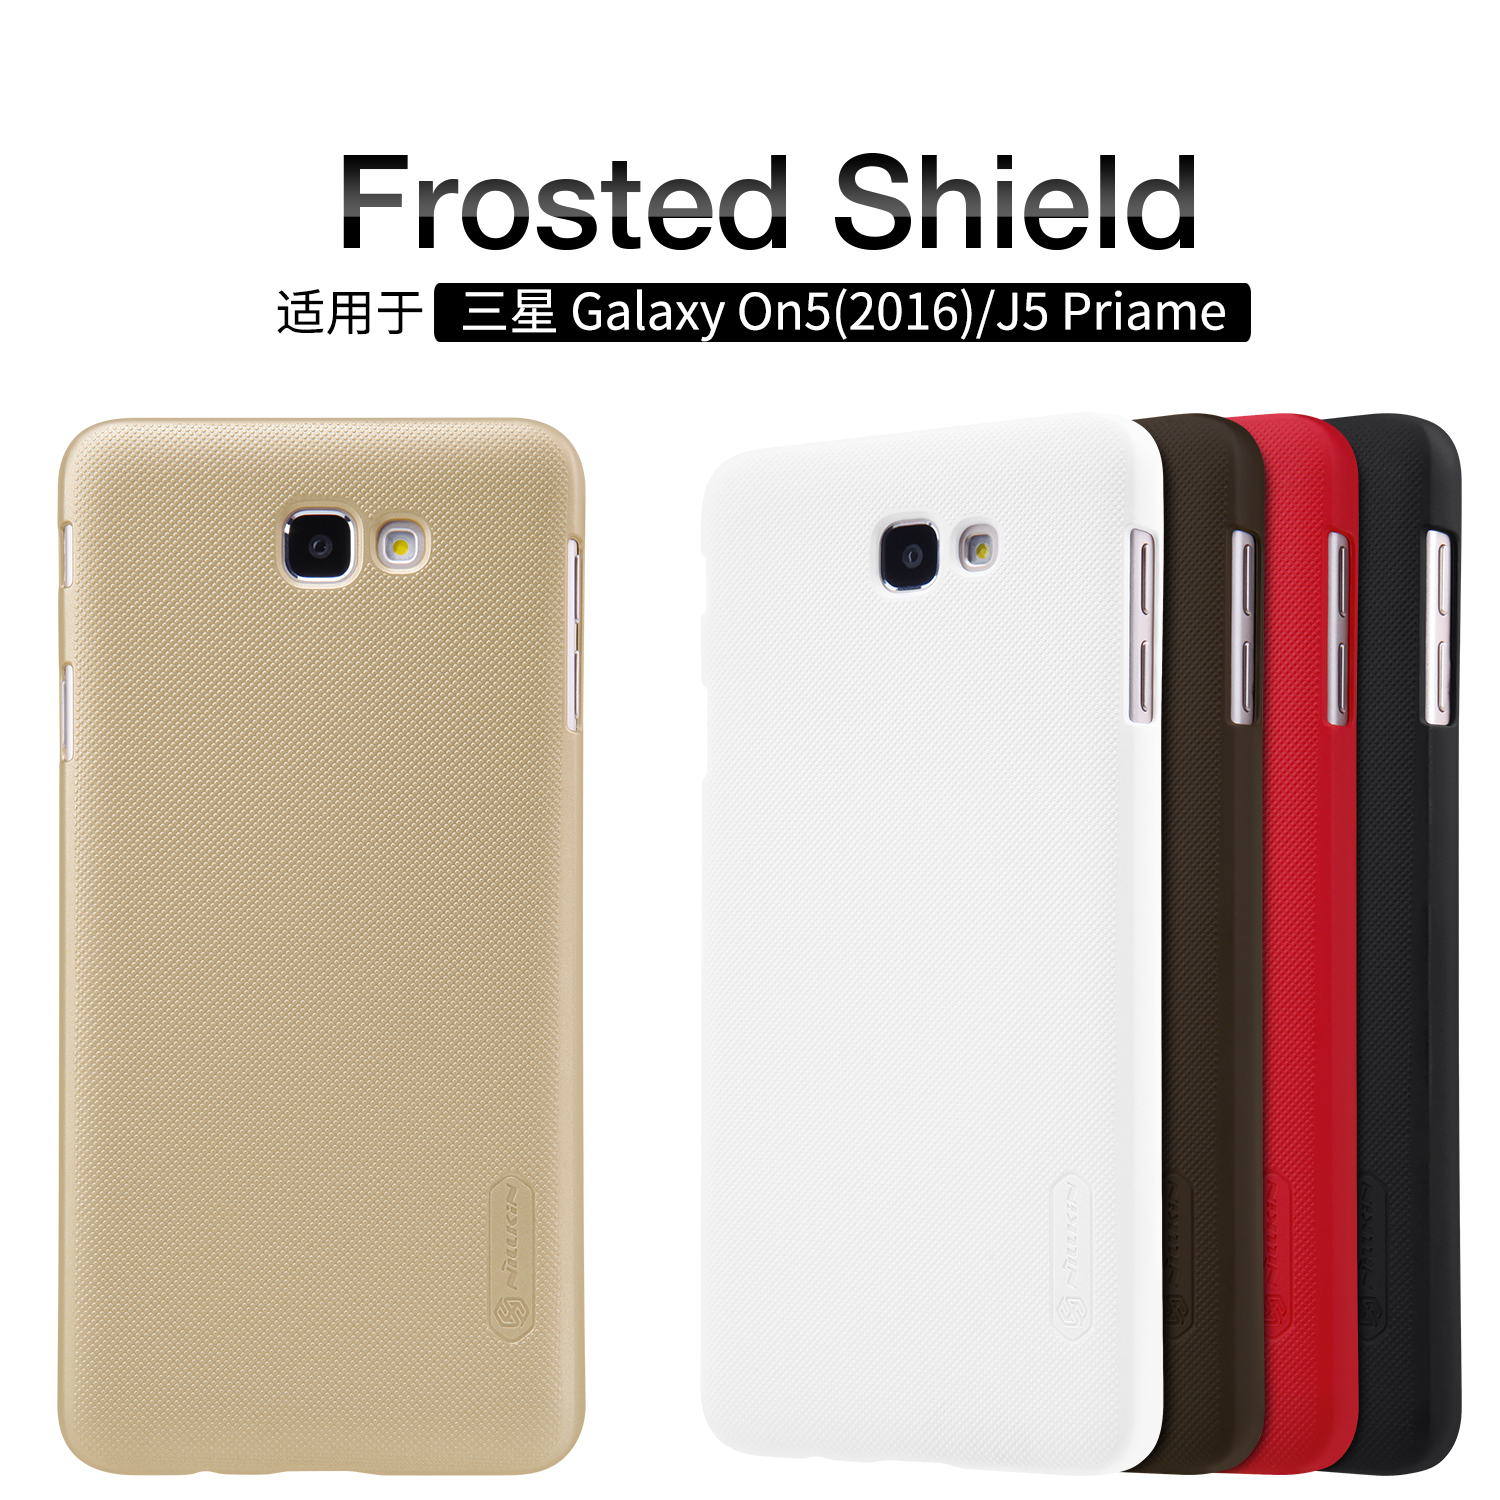 Nillkin Frosted Shield Case For Samsung Galaxy J5 prime G570F/On5 2016 Cover J7 Prime G610F/ On7 2016 Back Case with Screen Film